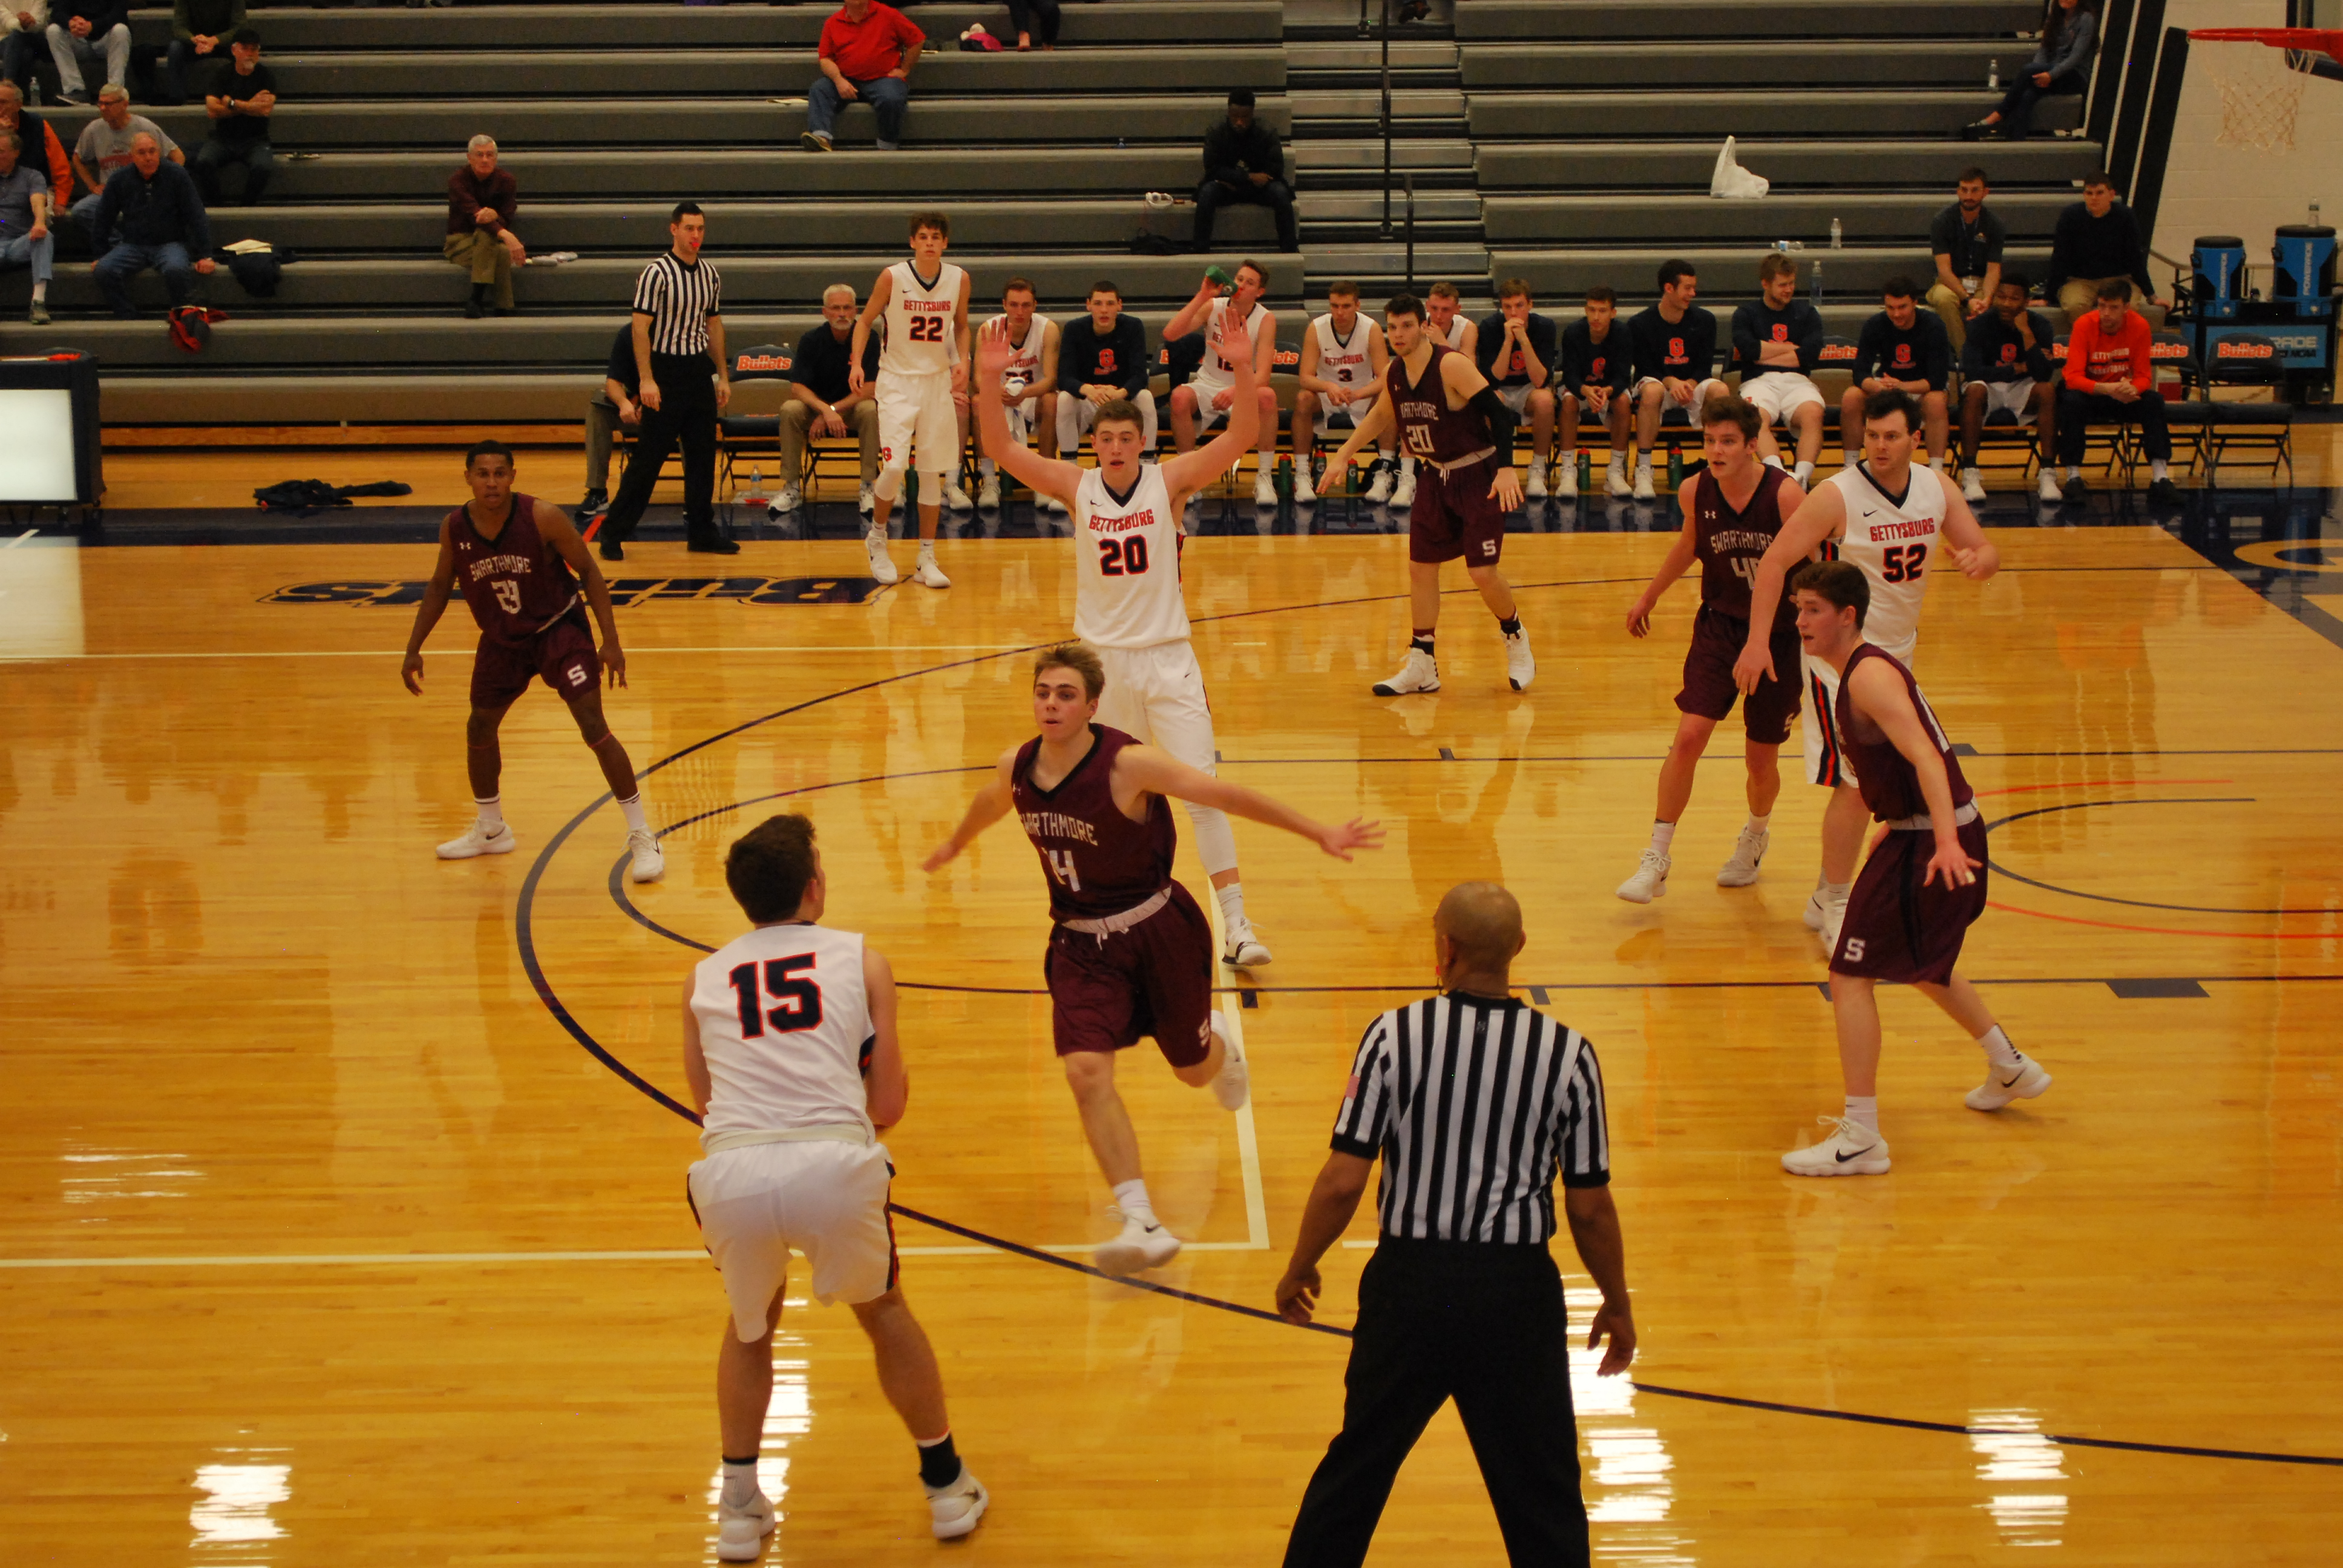 After Tight First Half, Swarthmore Pulls Away to Defeat